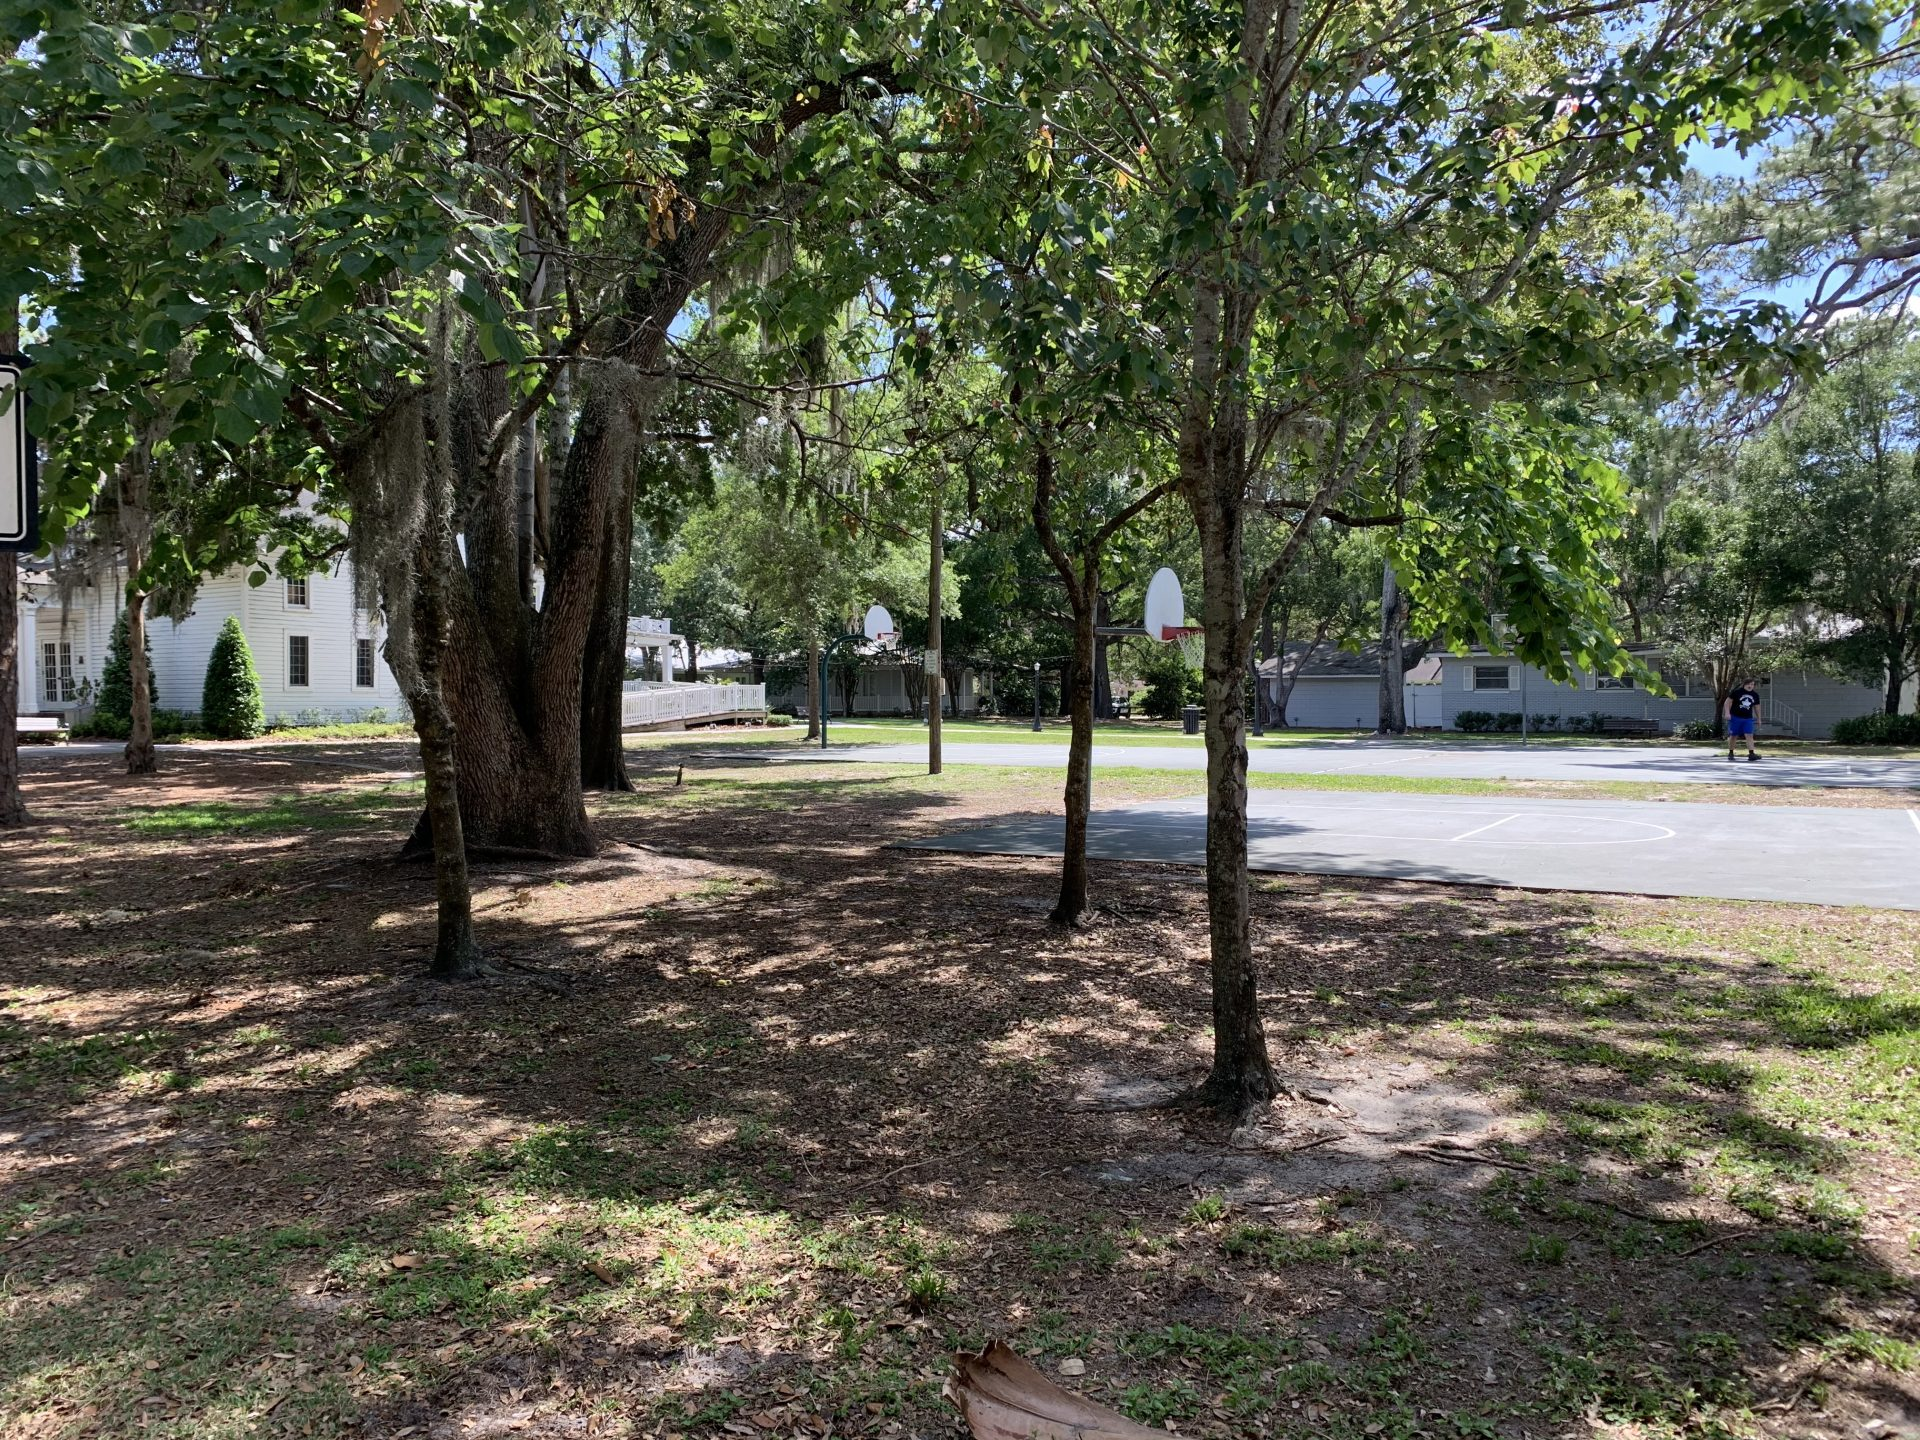 Town Square Park in Windermere, FL